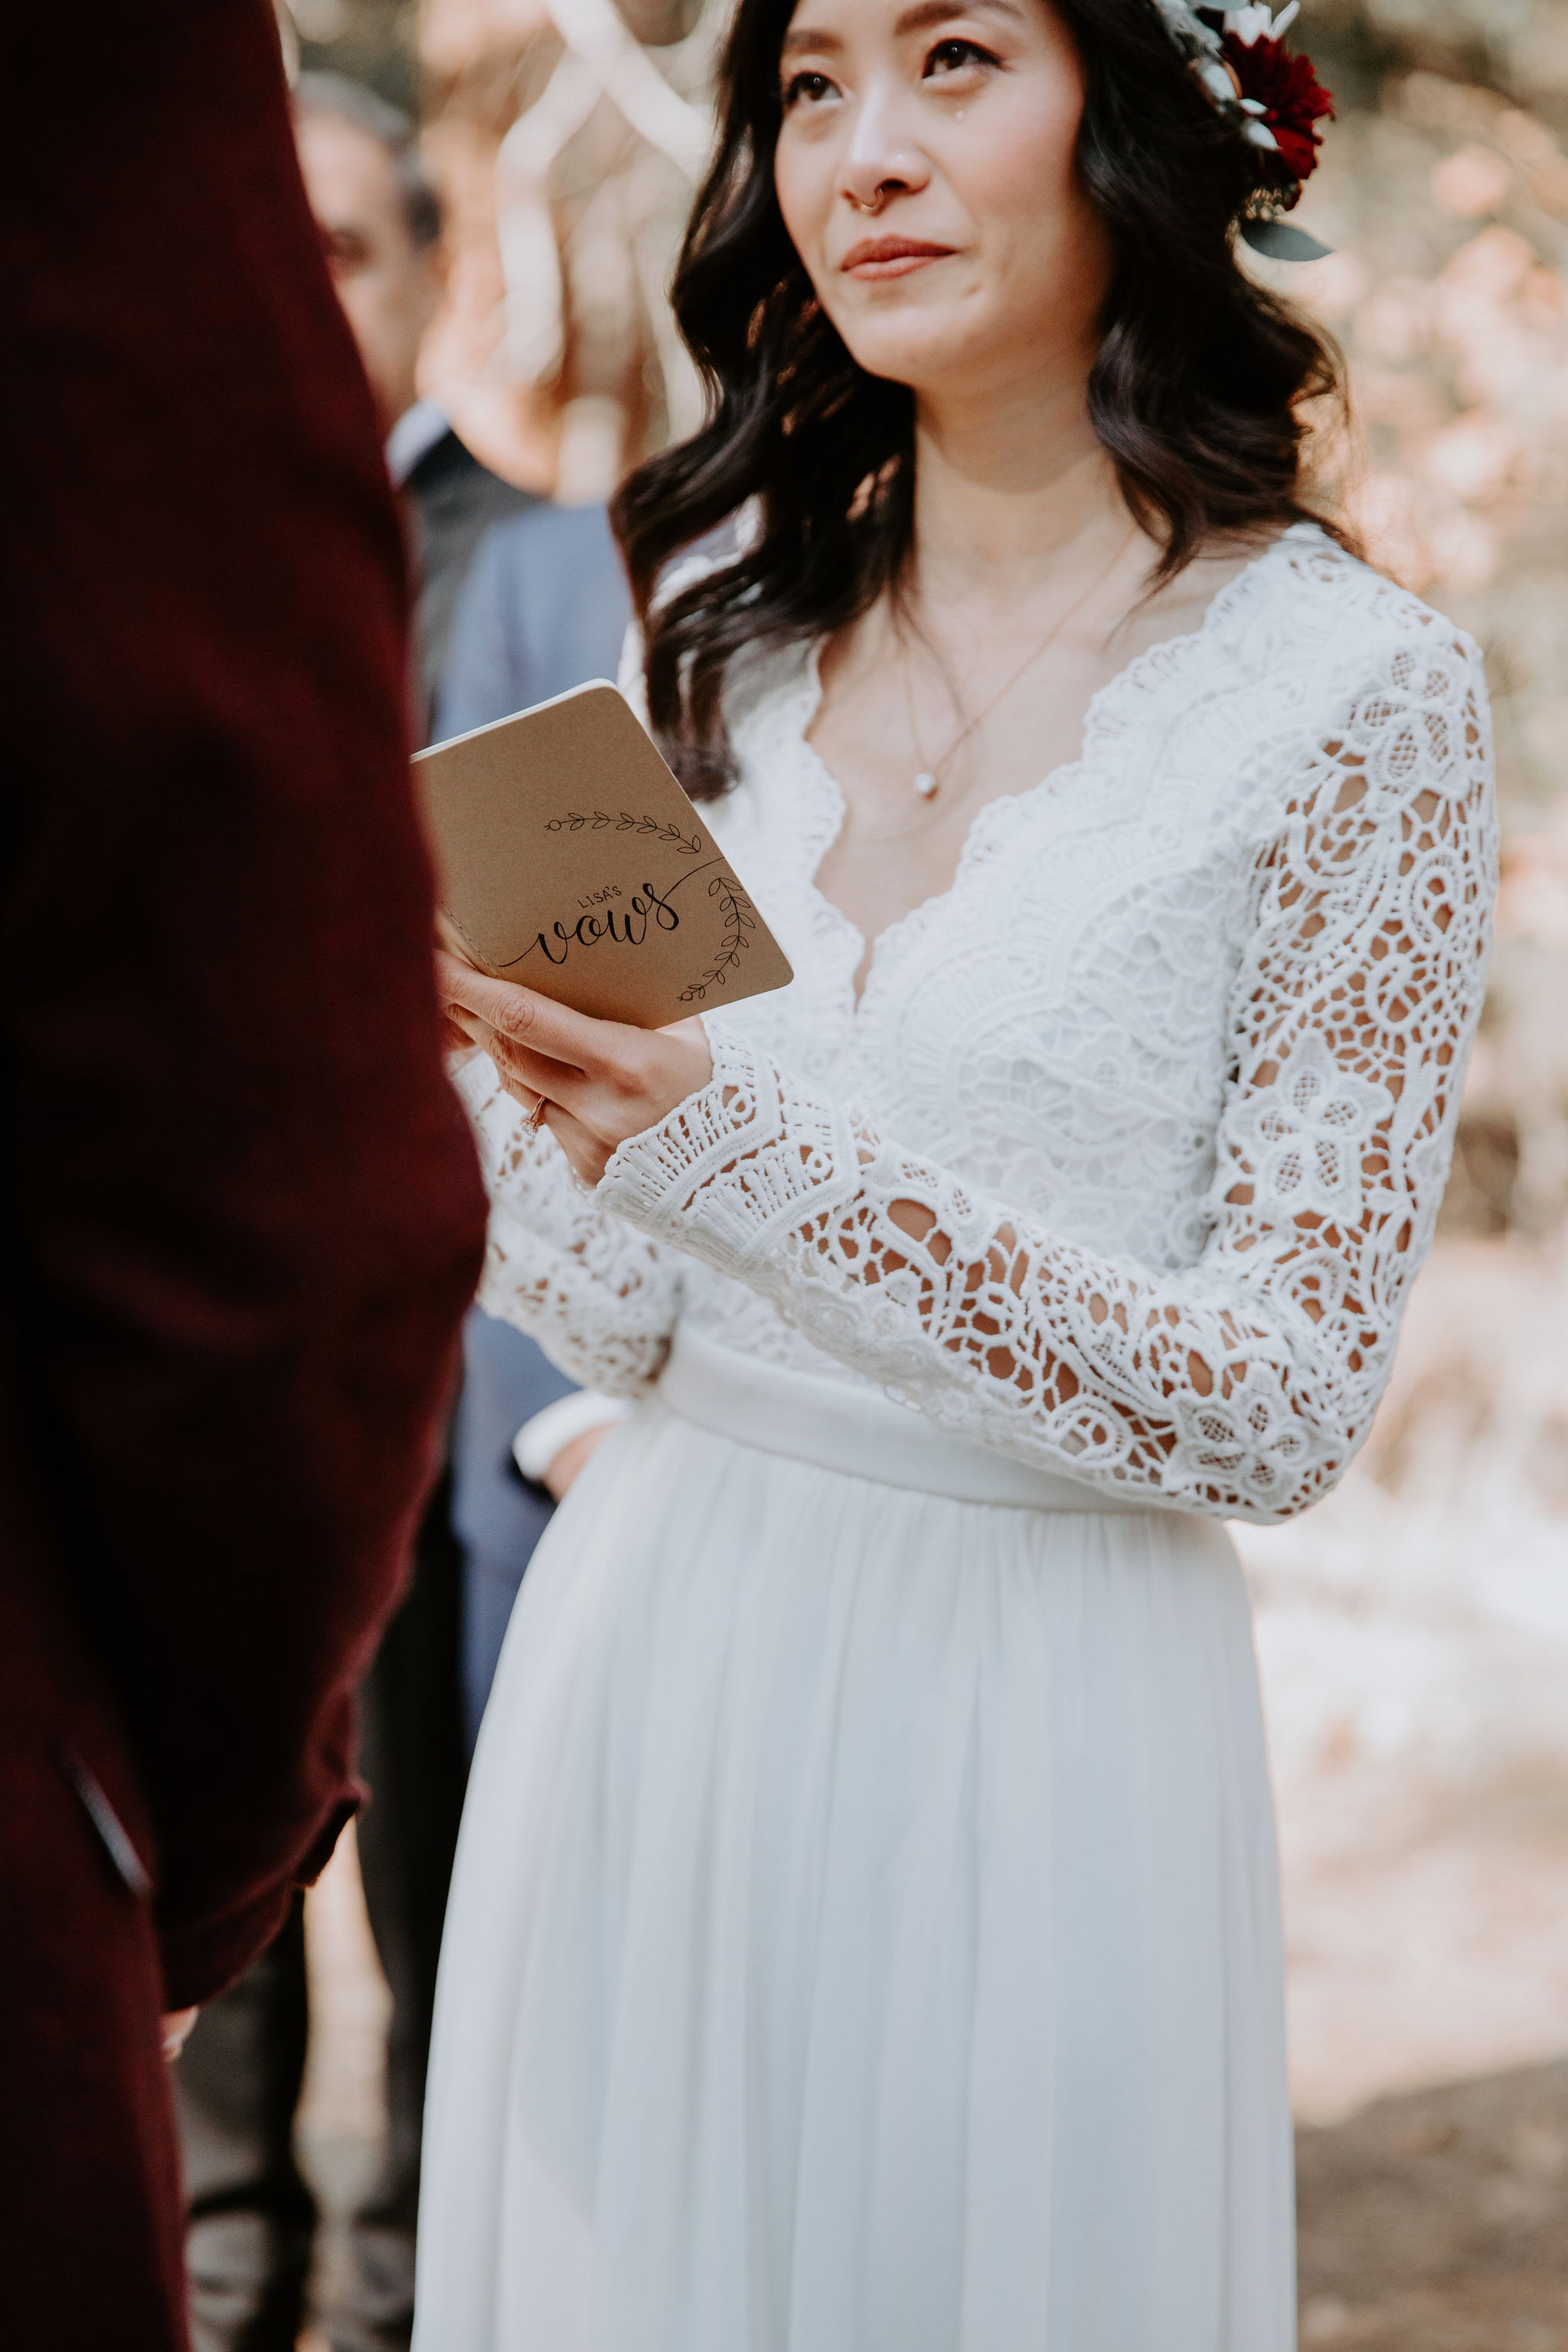 Yosemite National Park Elopement Ceremony May Iosotaluno Photography Vows Book